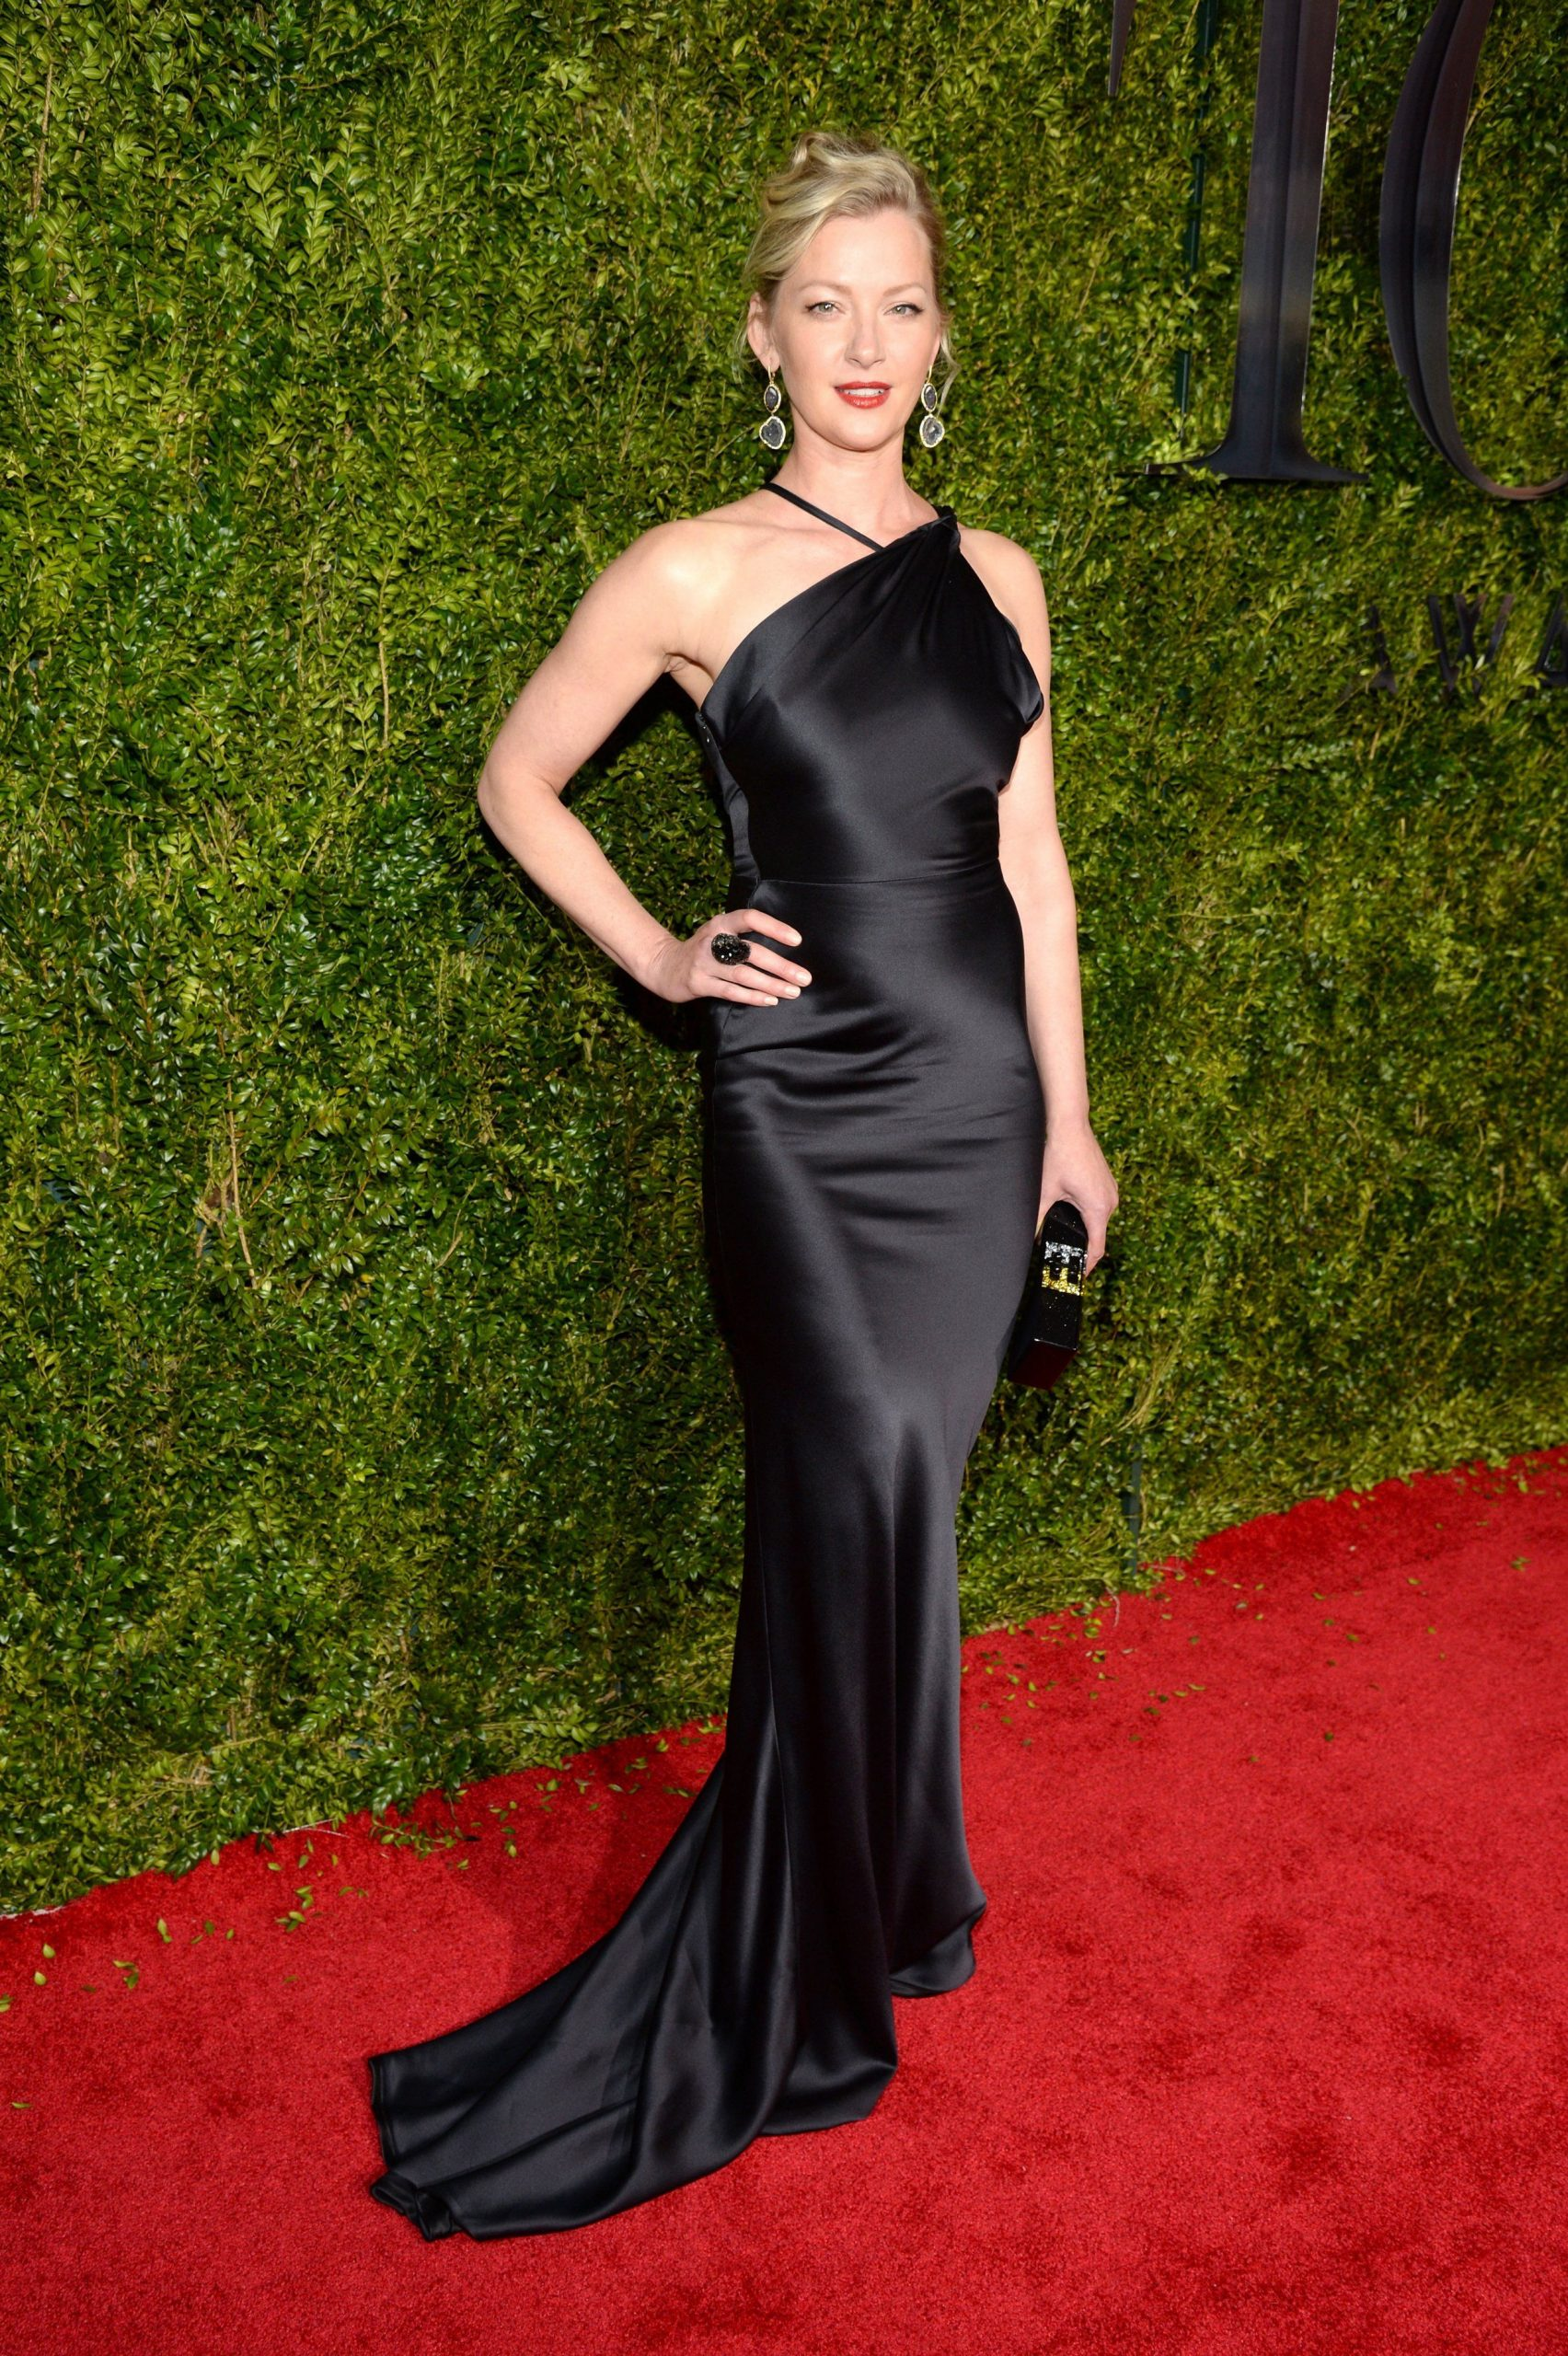 Tony Awards 2015 Celebrity Fashion—Live From The Red